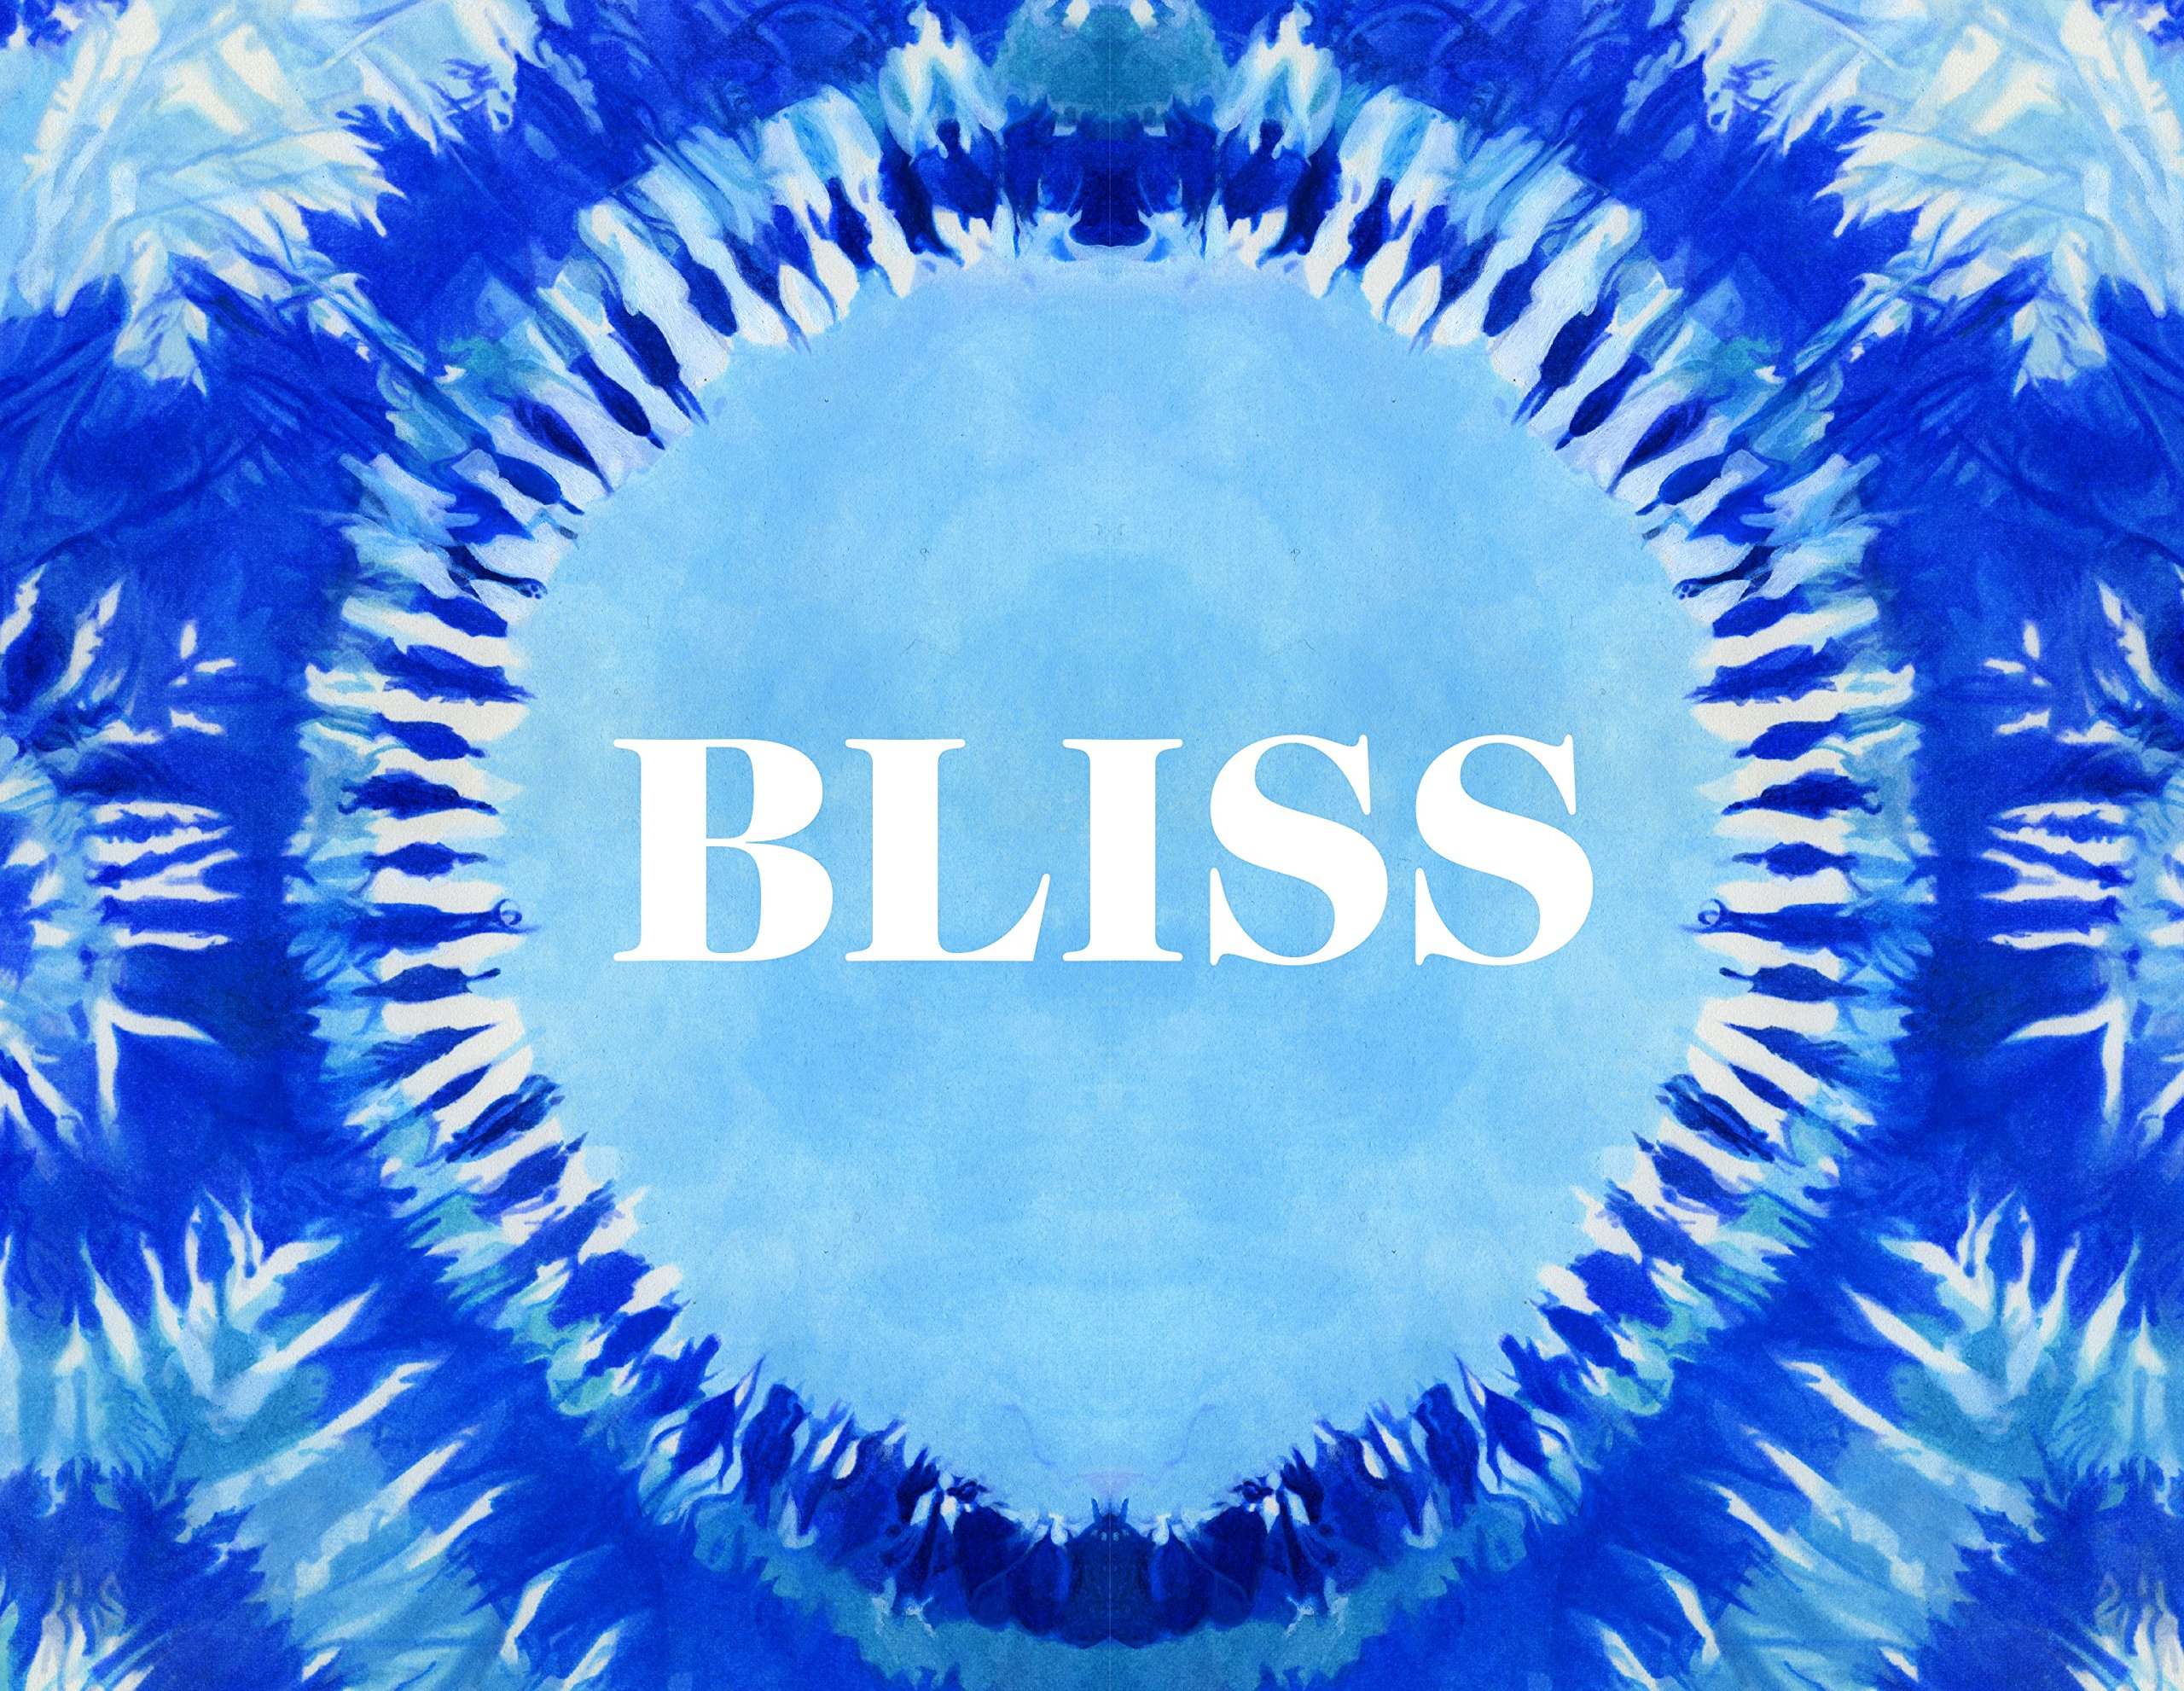 Bliss: Transformational Festivals & the Neo Hippie